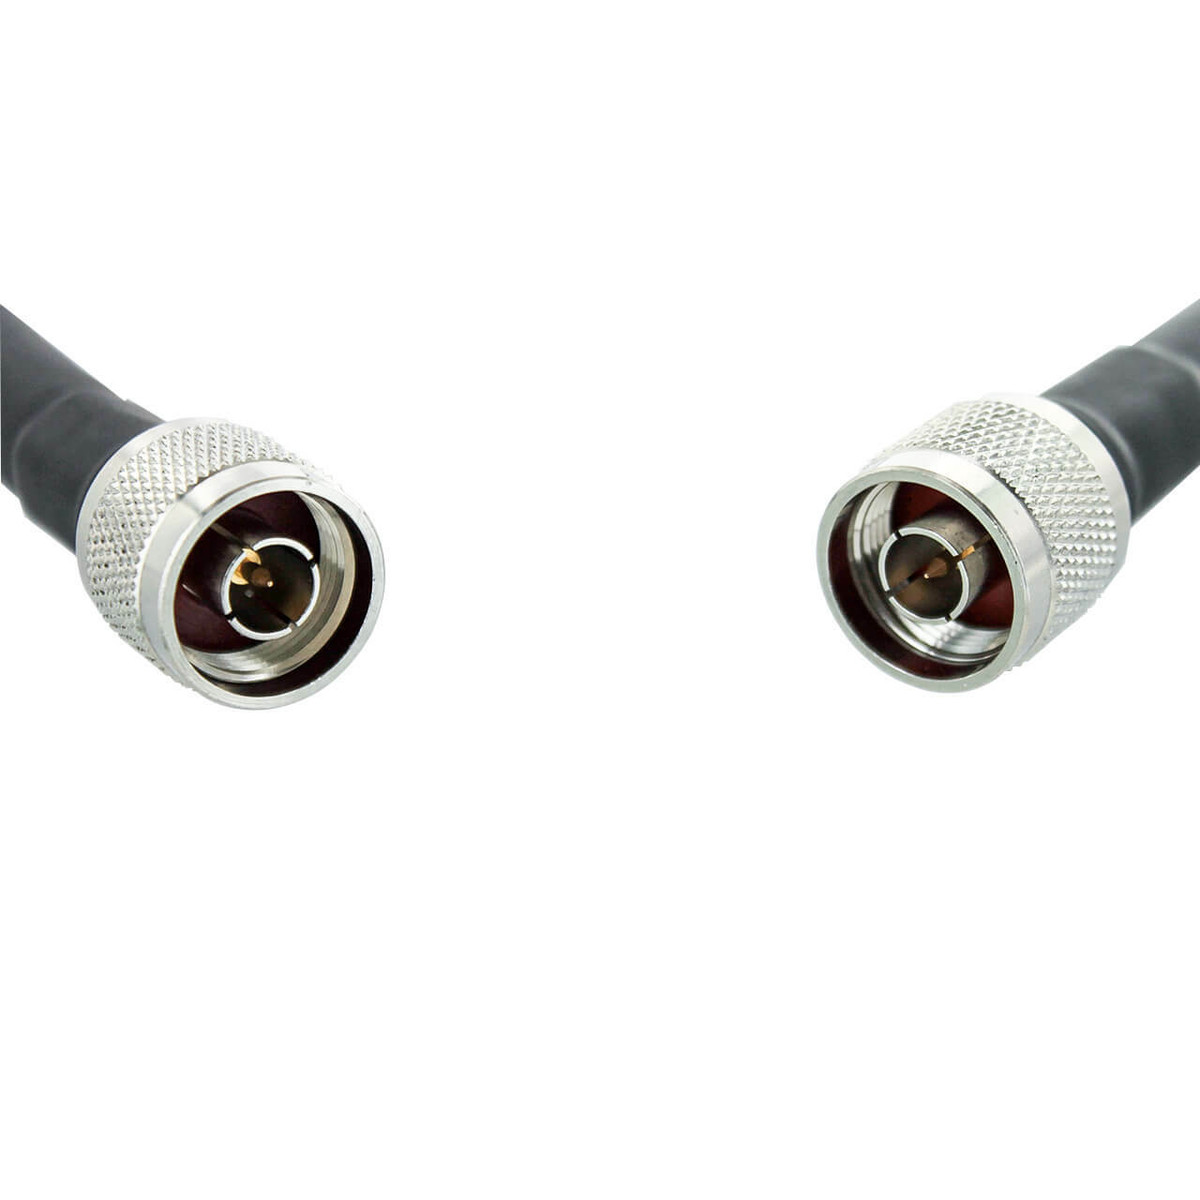 Bolton Tech Bolton Technical N-Male to N-Male Bolton400 Ultra Low-Loss Coax Cable or 50 ft Cable